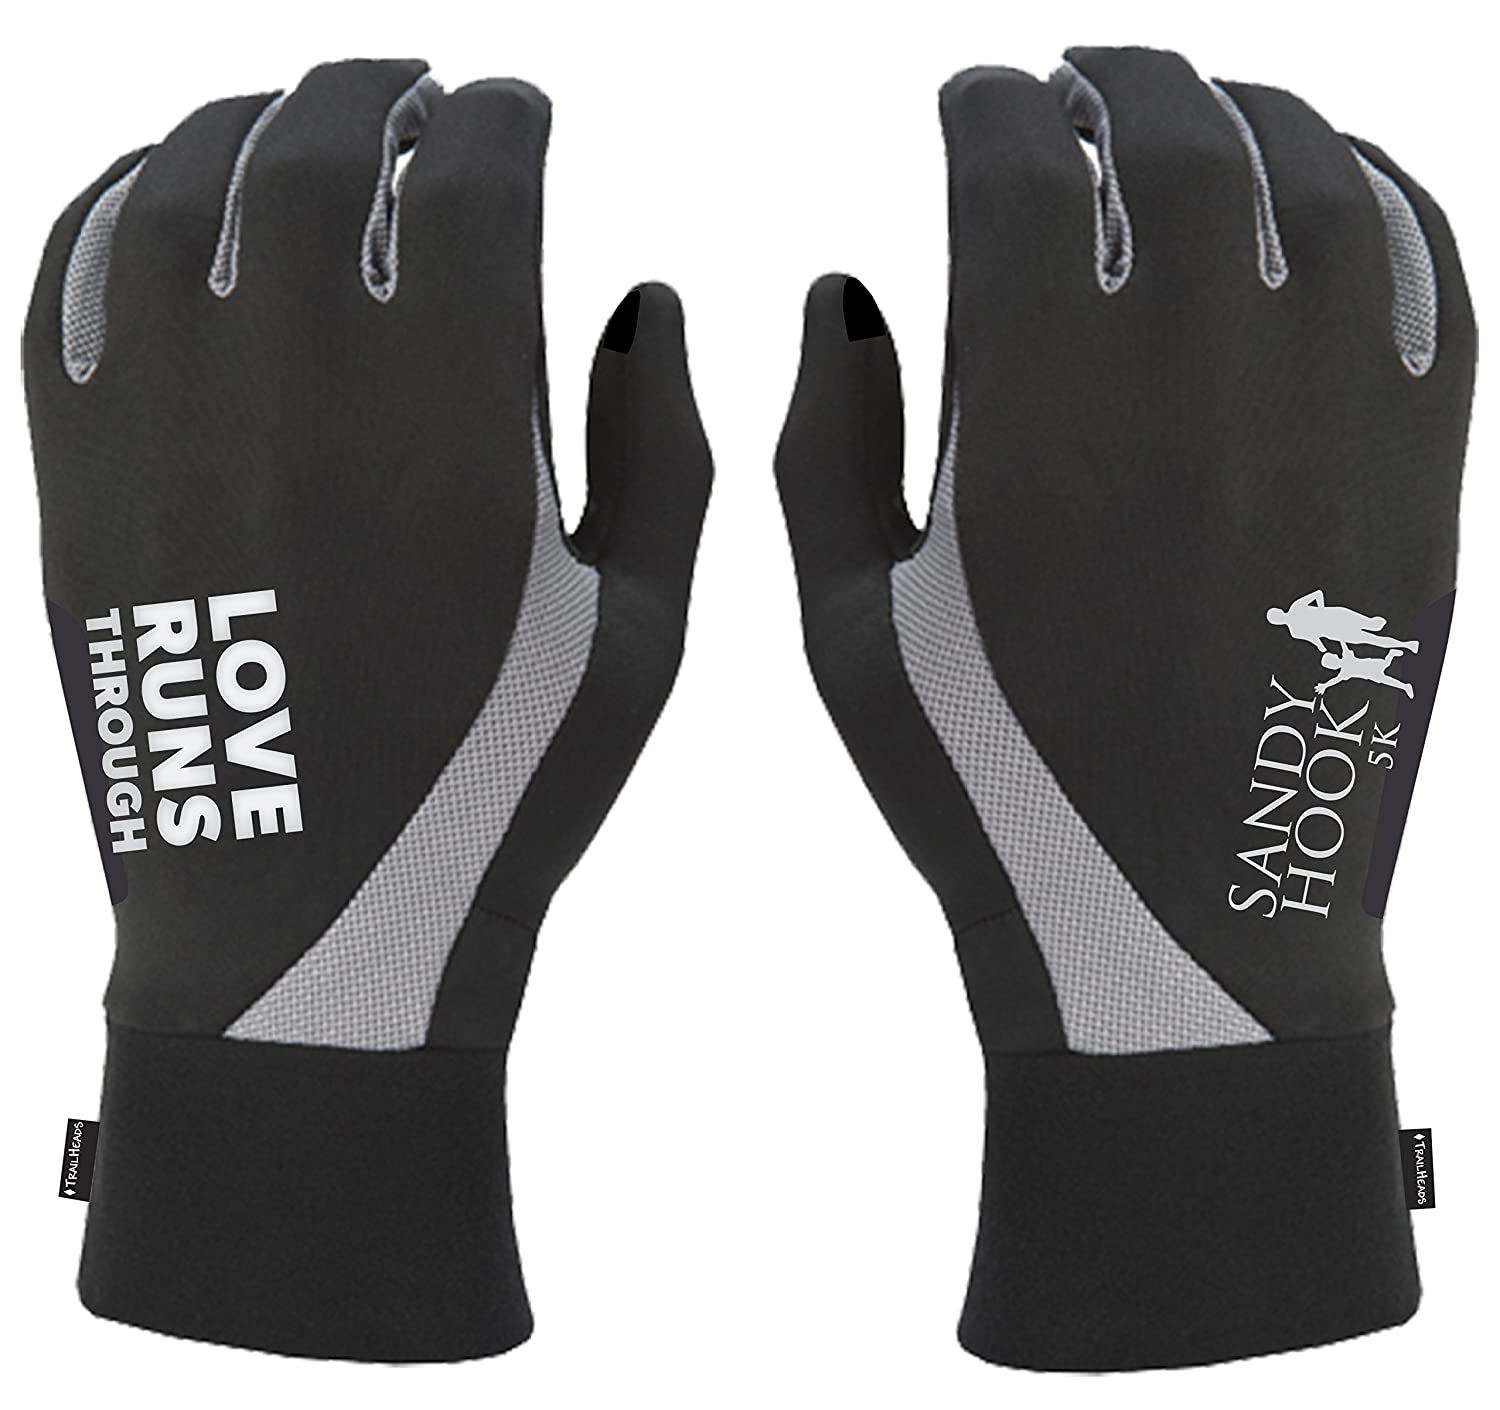 TrailHeads Running Gloves | Lightweight Gloves with Touchscreen Fingers | The Elements